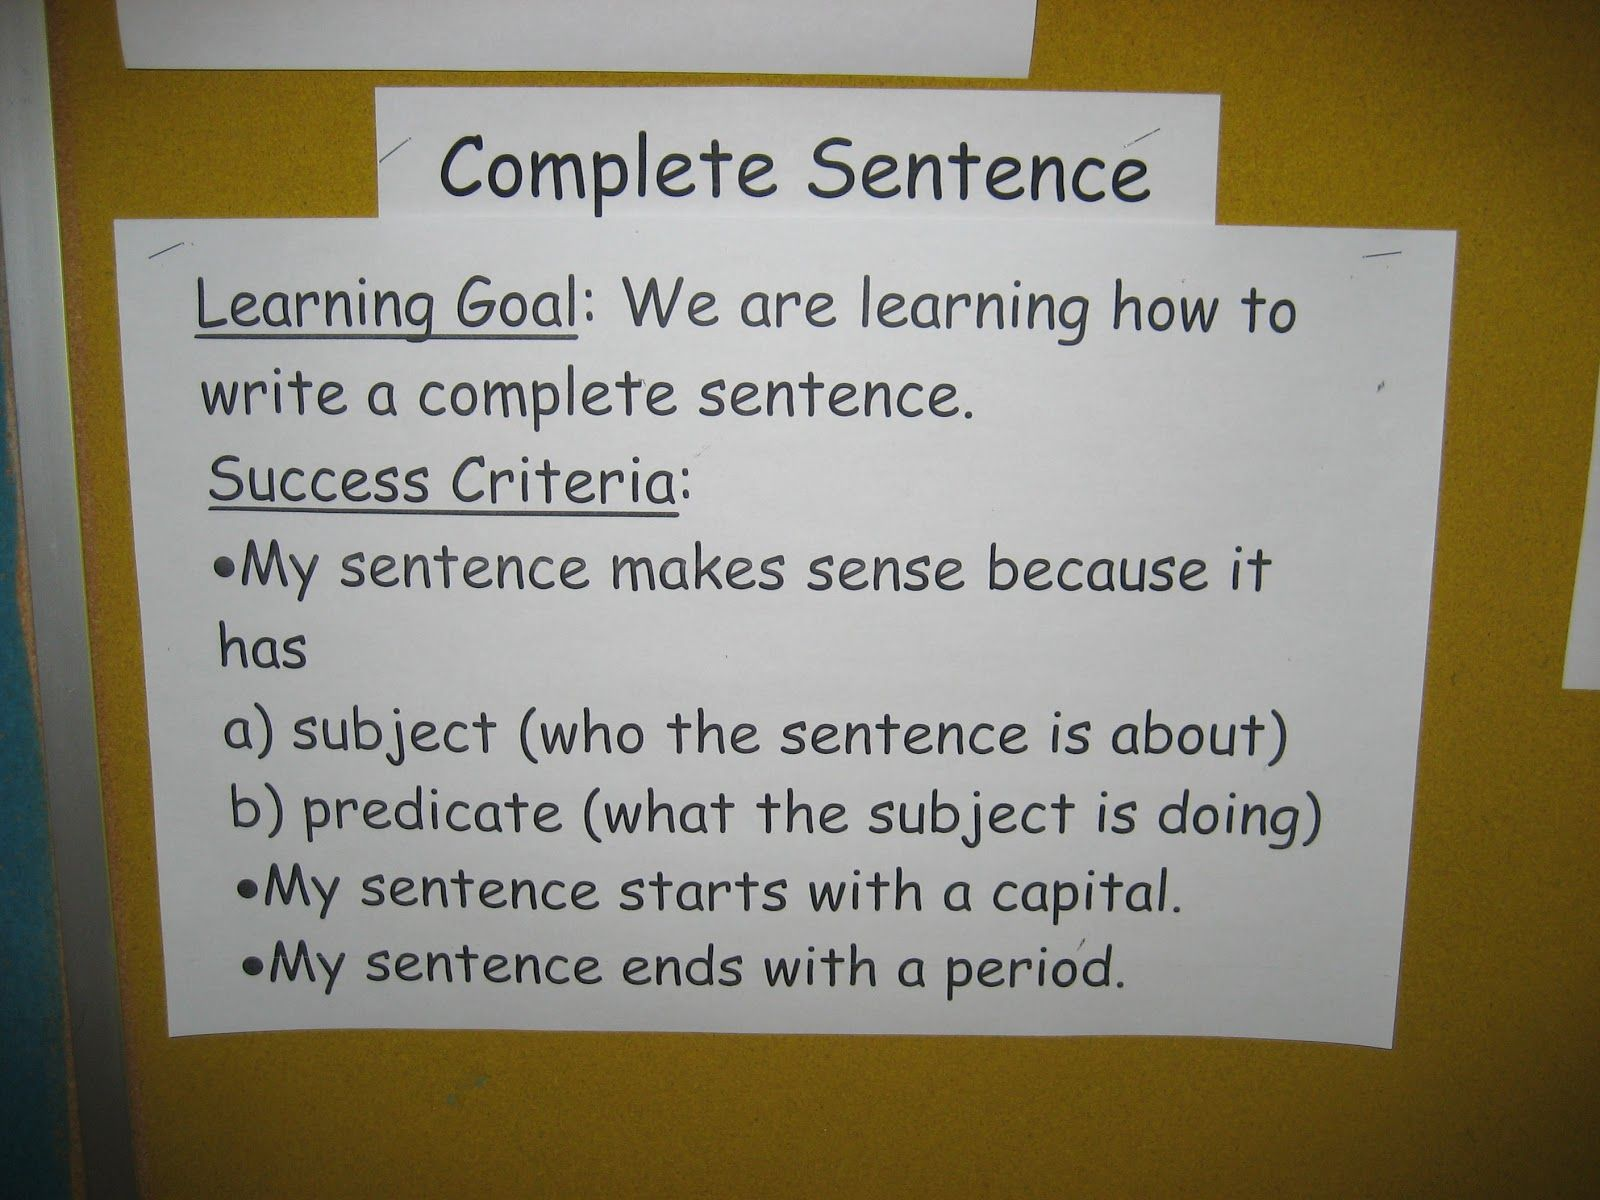 best images about teaching evaluation assessment on success criteria for sentences